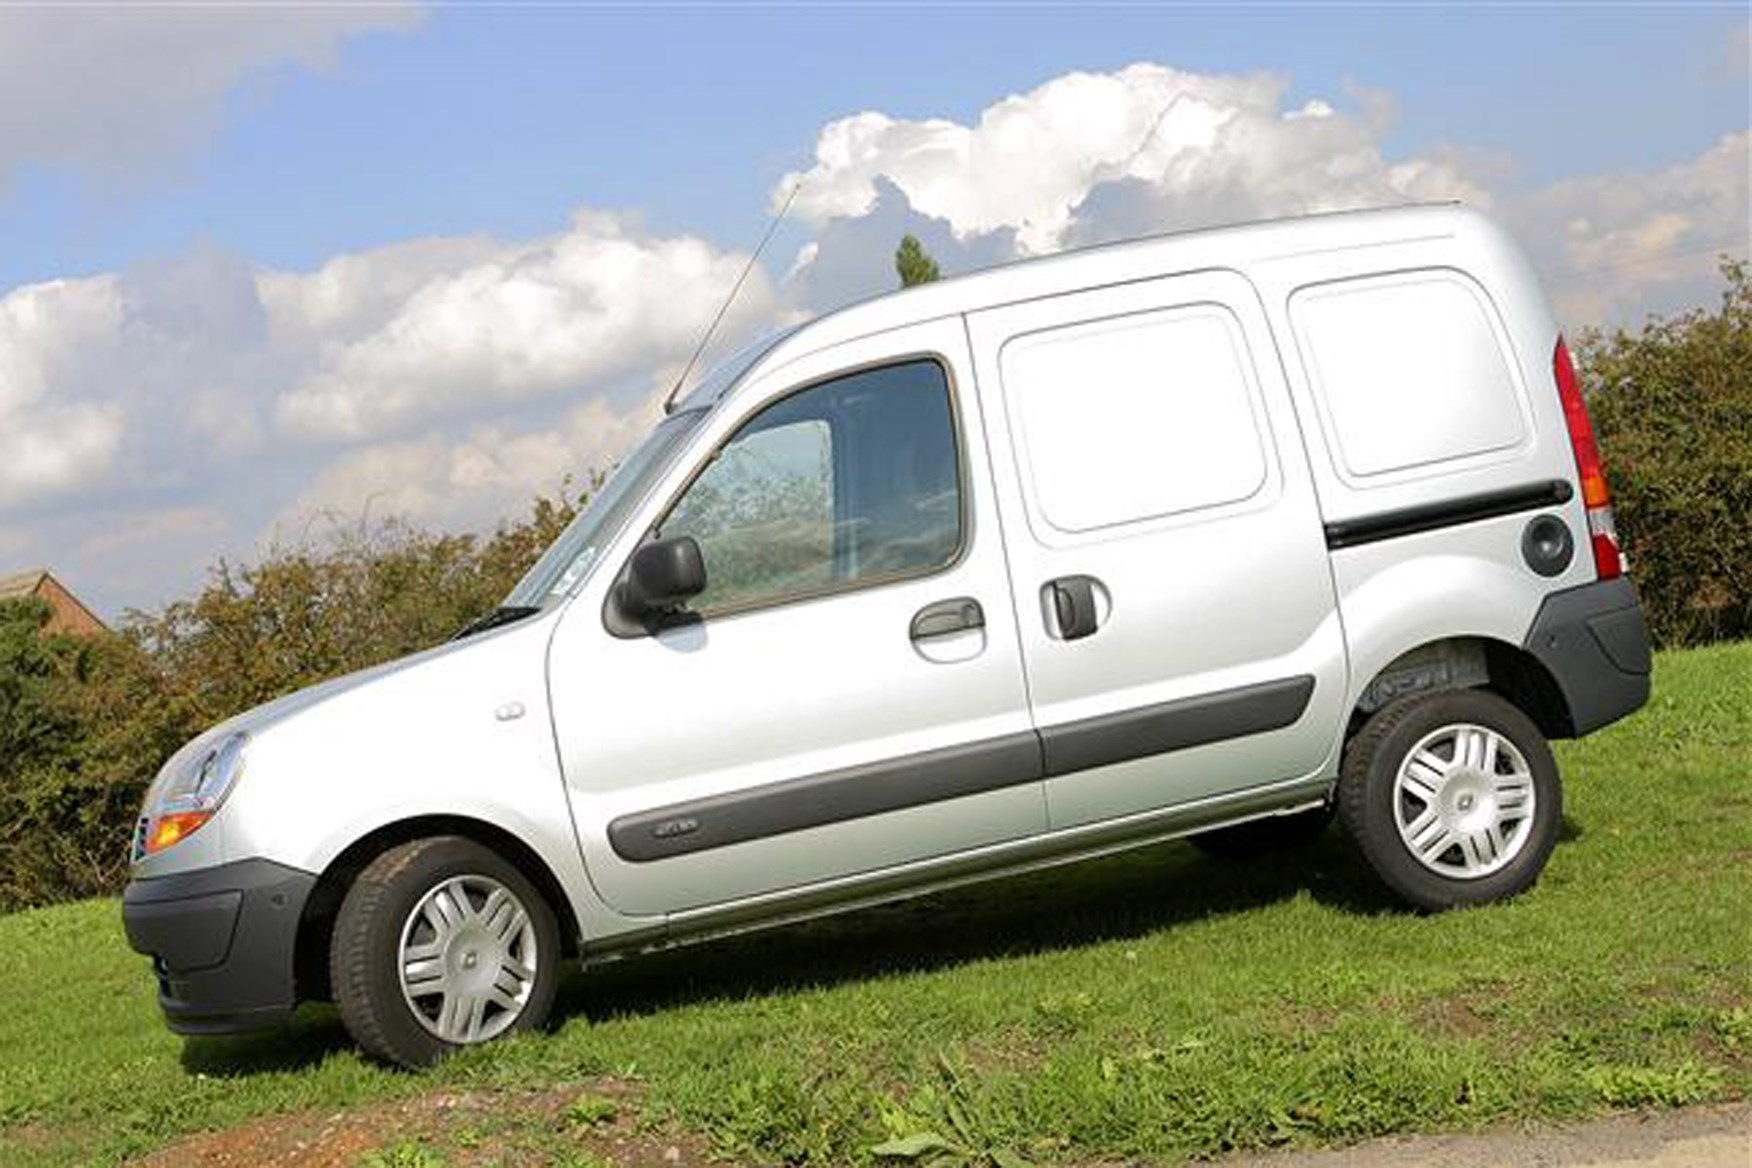 3b2d445e0fd830 Renault Kangoo review on Parkers Vans - side exterior